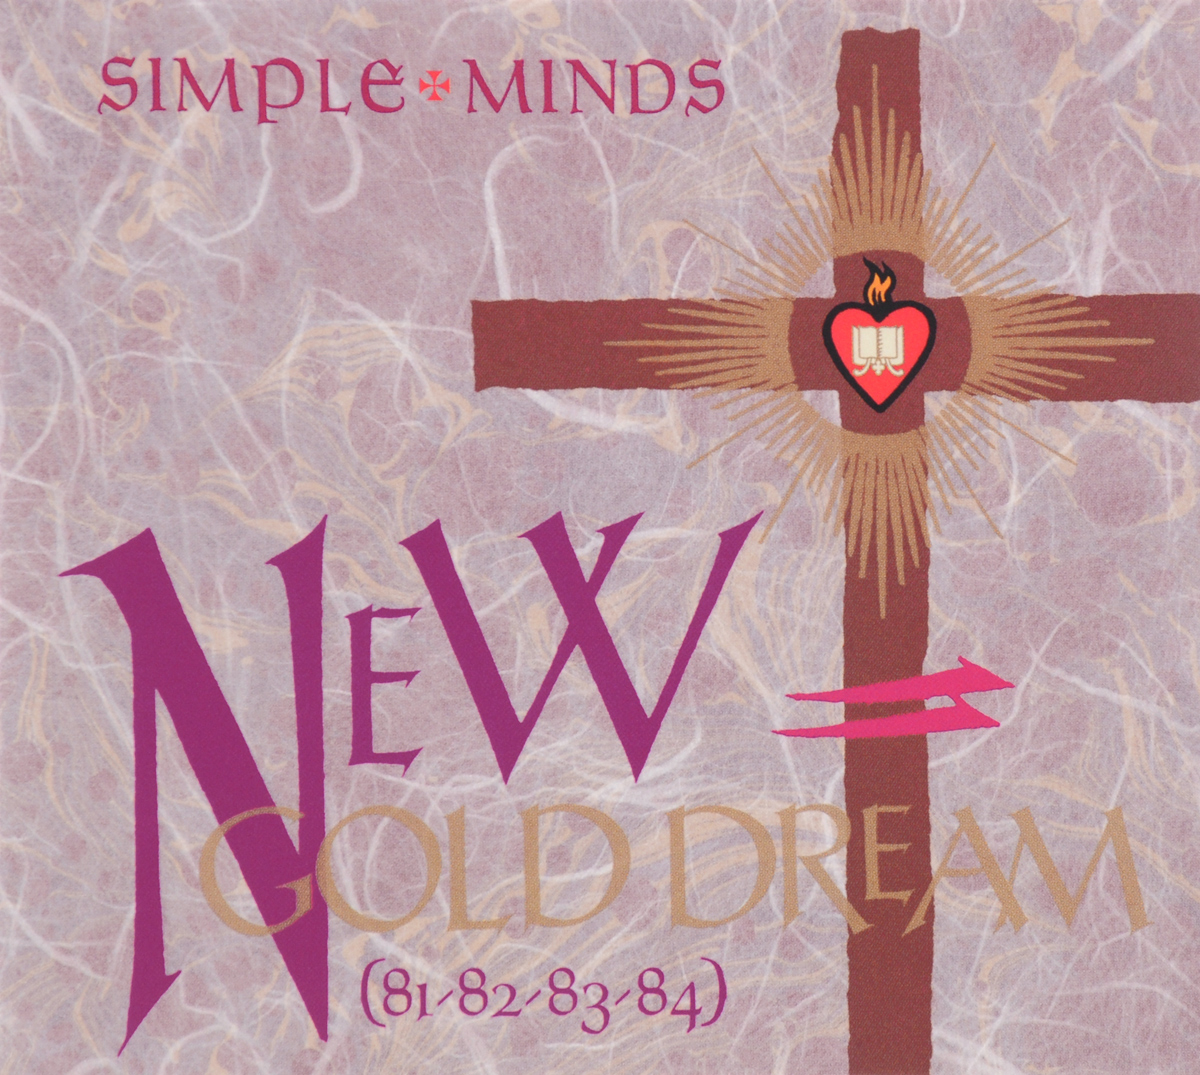 Simple Minds Simple Minds. New Gold Dream (81-82-83-84) (Deluxe) (2 CD) simple minds vancouver